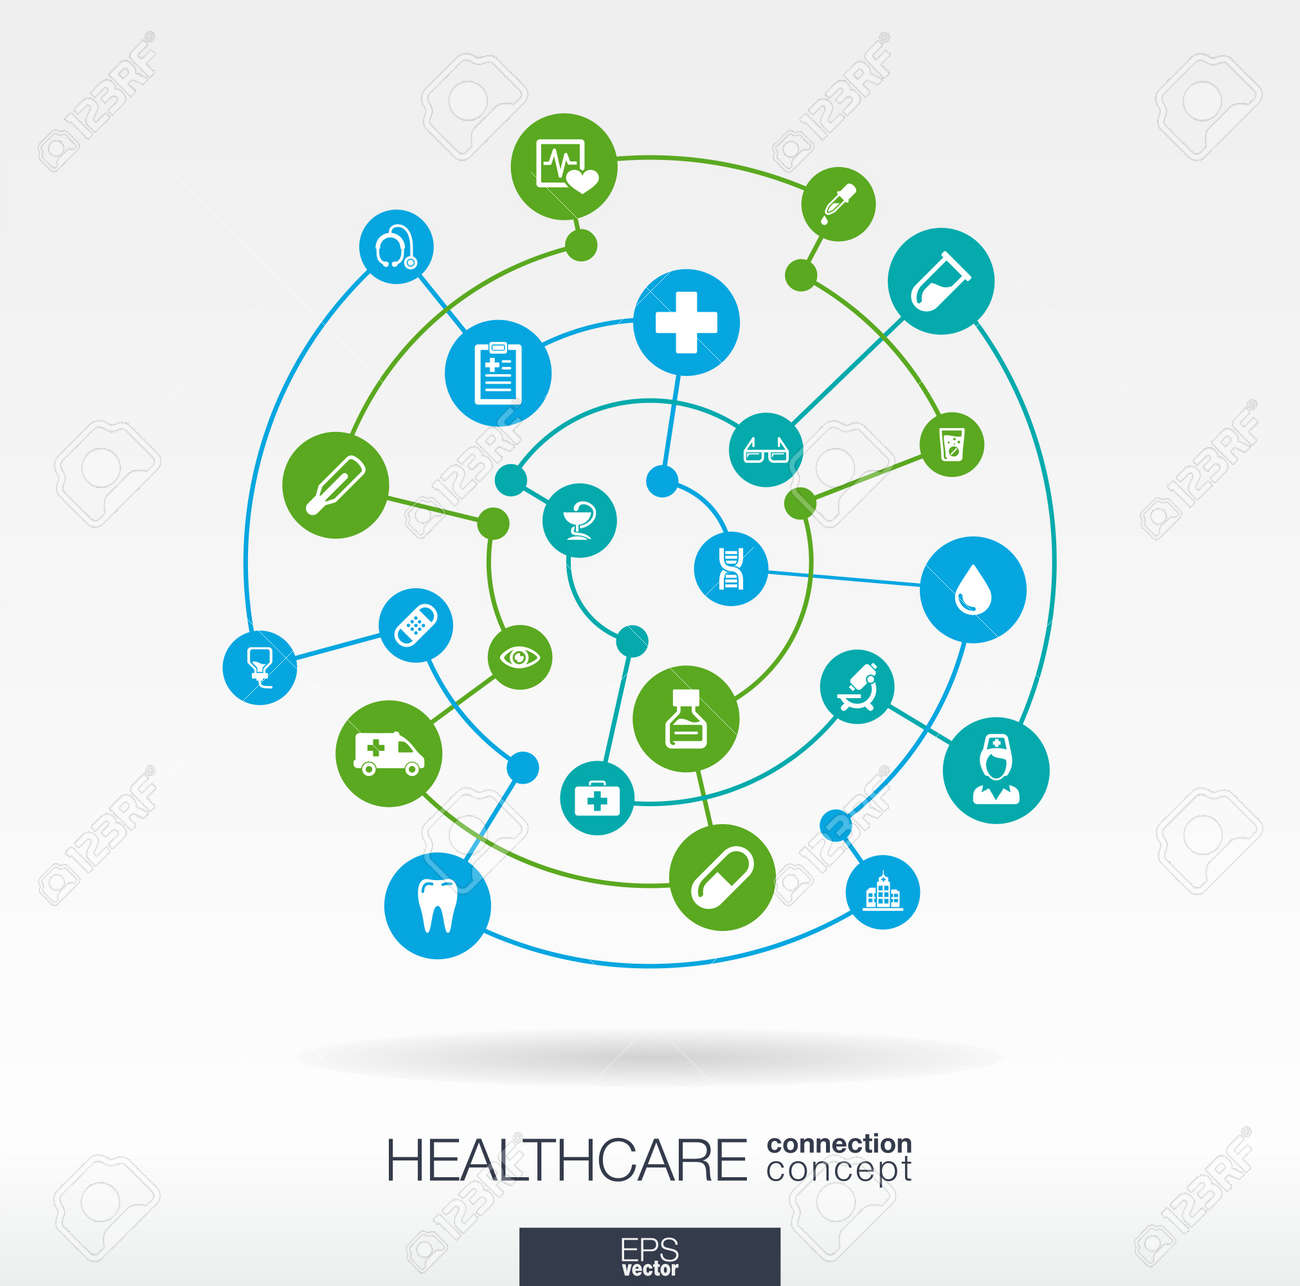 Healthcare connection concept. Abstract background with integrated circles and icons for medical, health, care, medicine, network, social media and global concepts. Vector infographic illustration. Stock Vector - 31733394